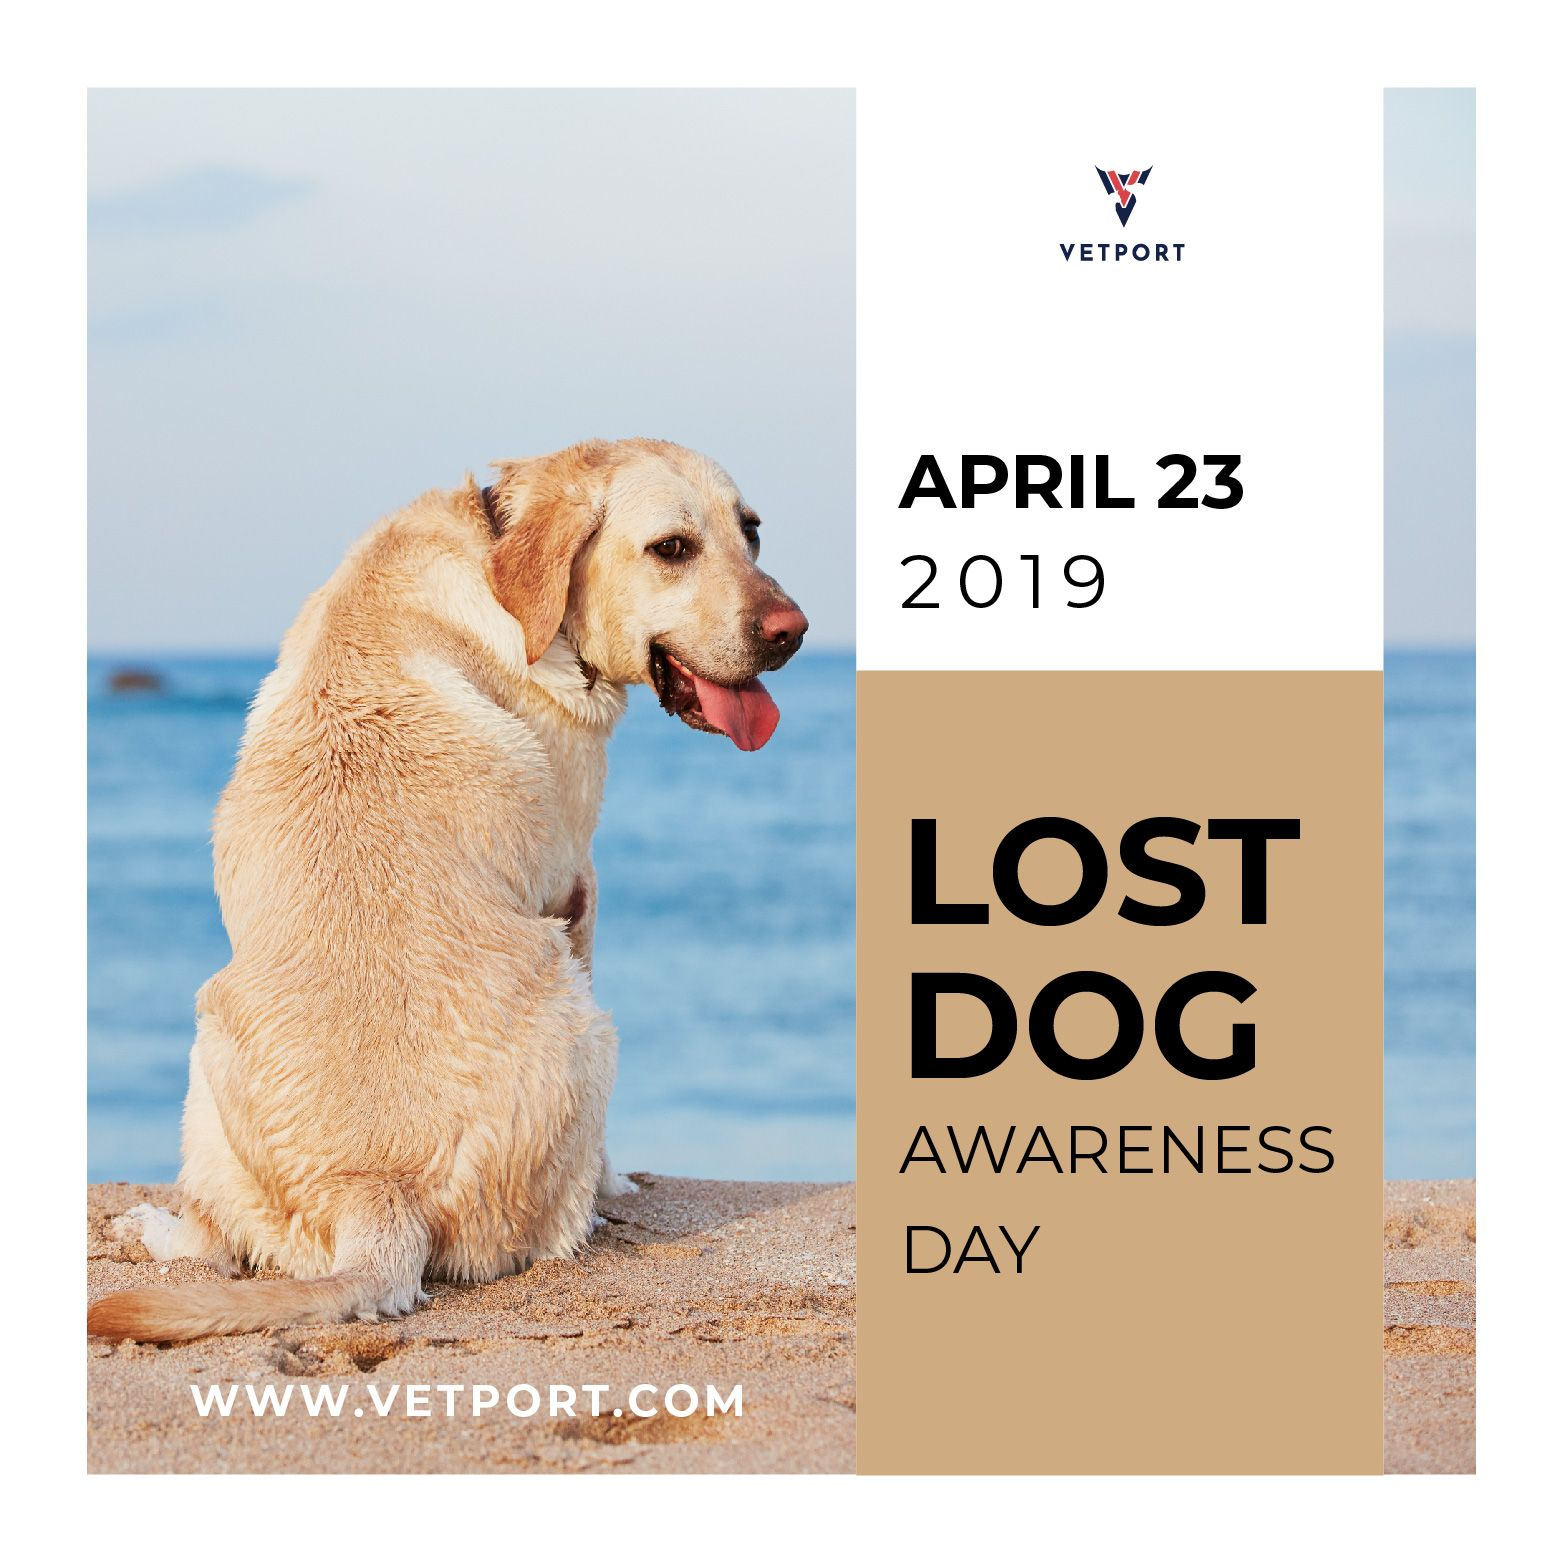 National Lost Dog Awareness Day April 23 2019 Lostdog